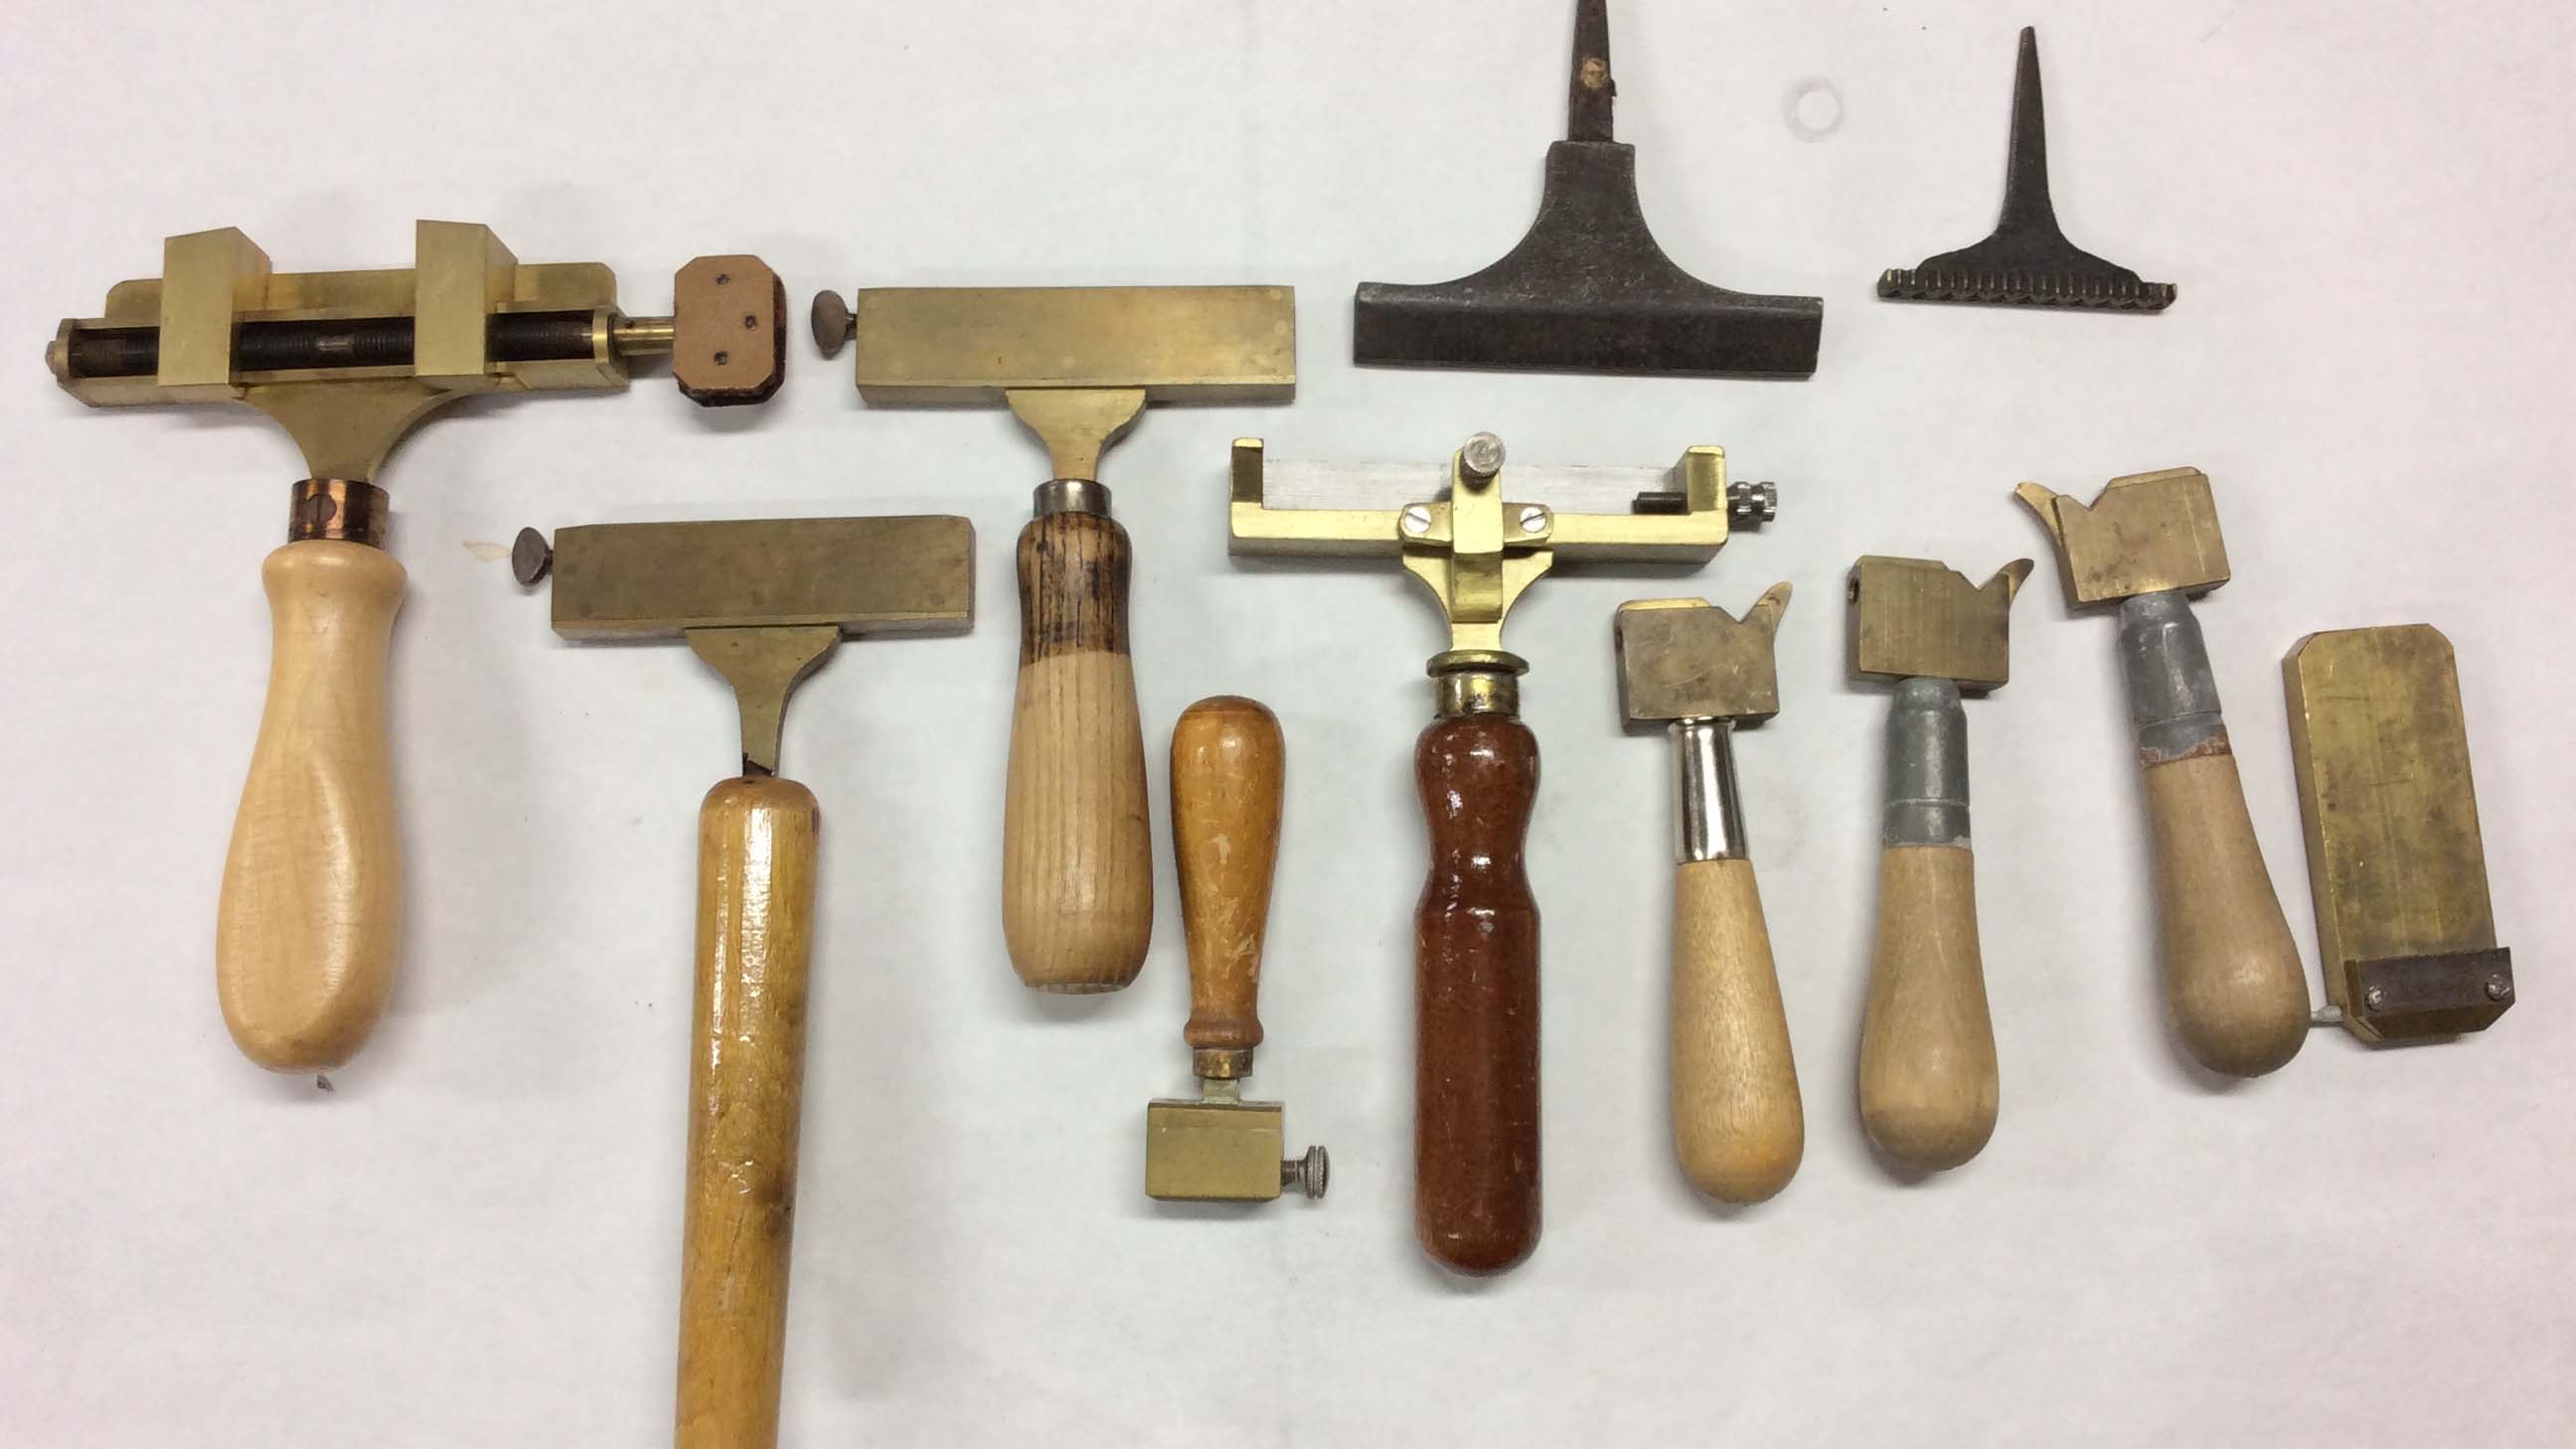 RM_Small tools